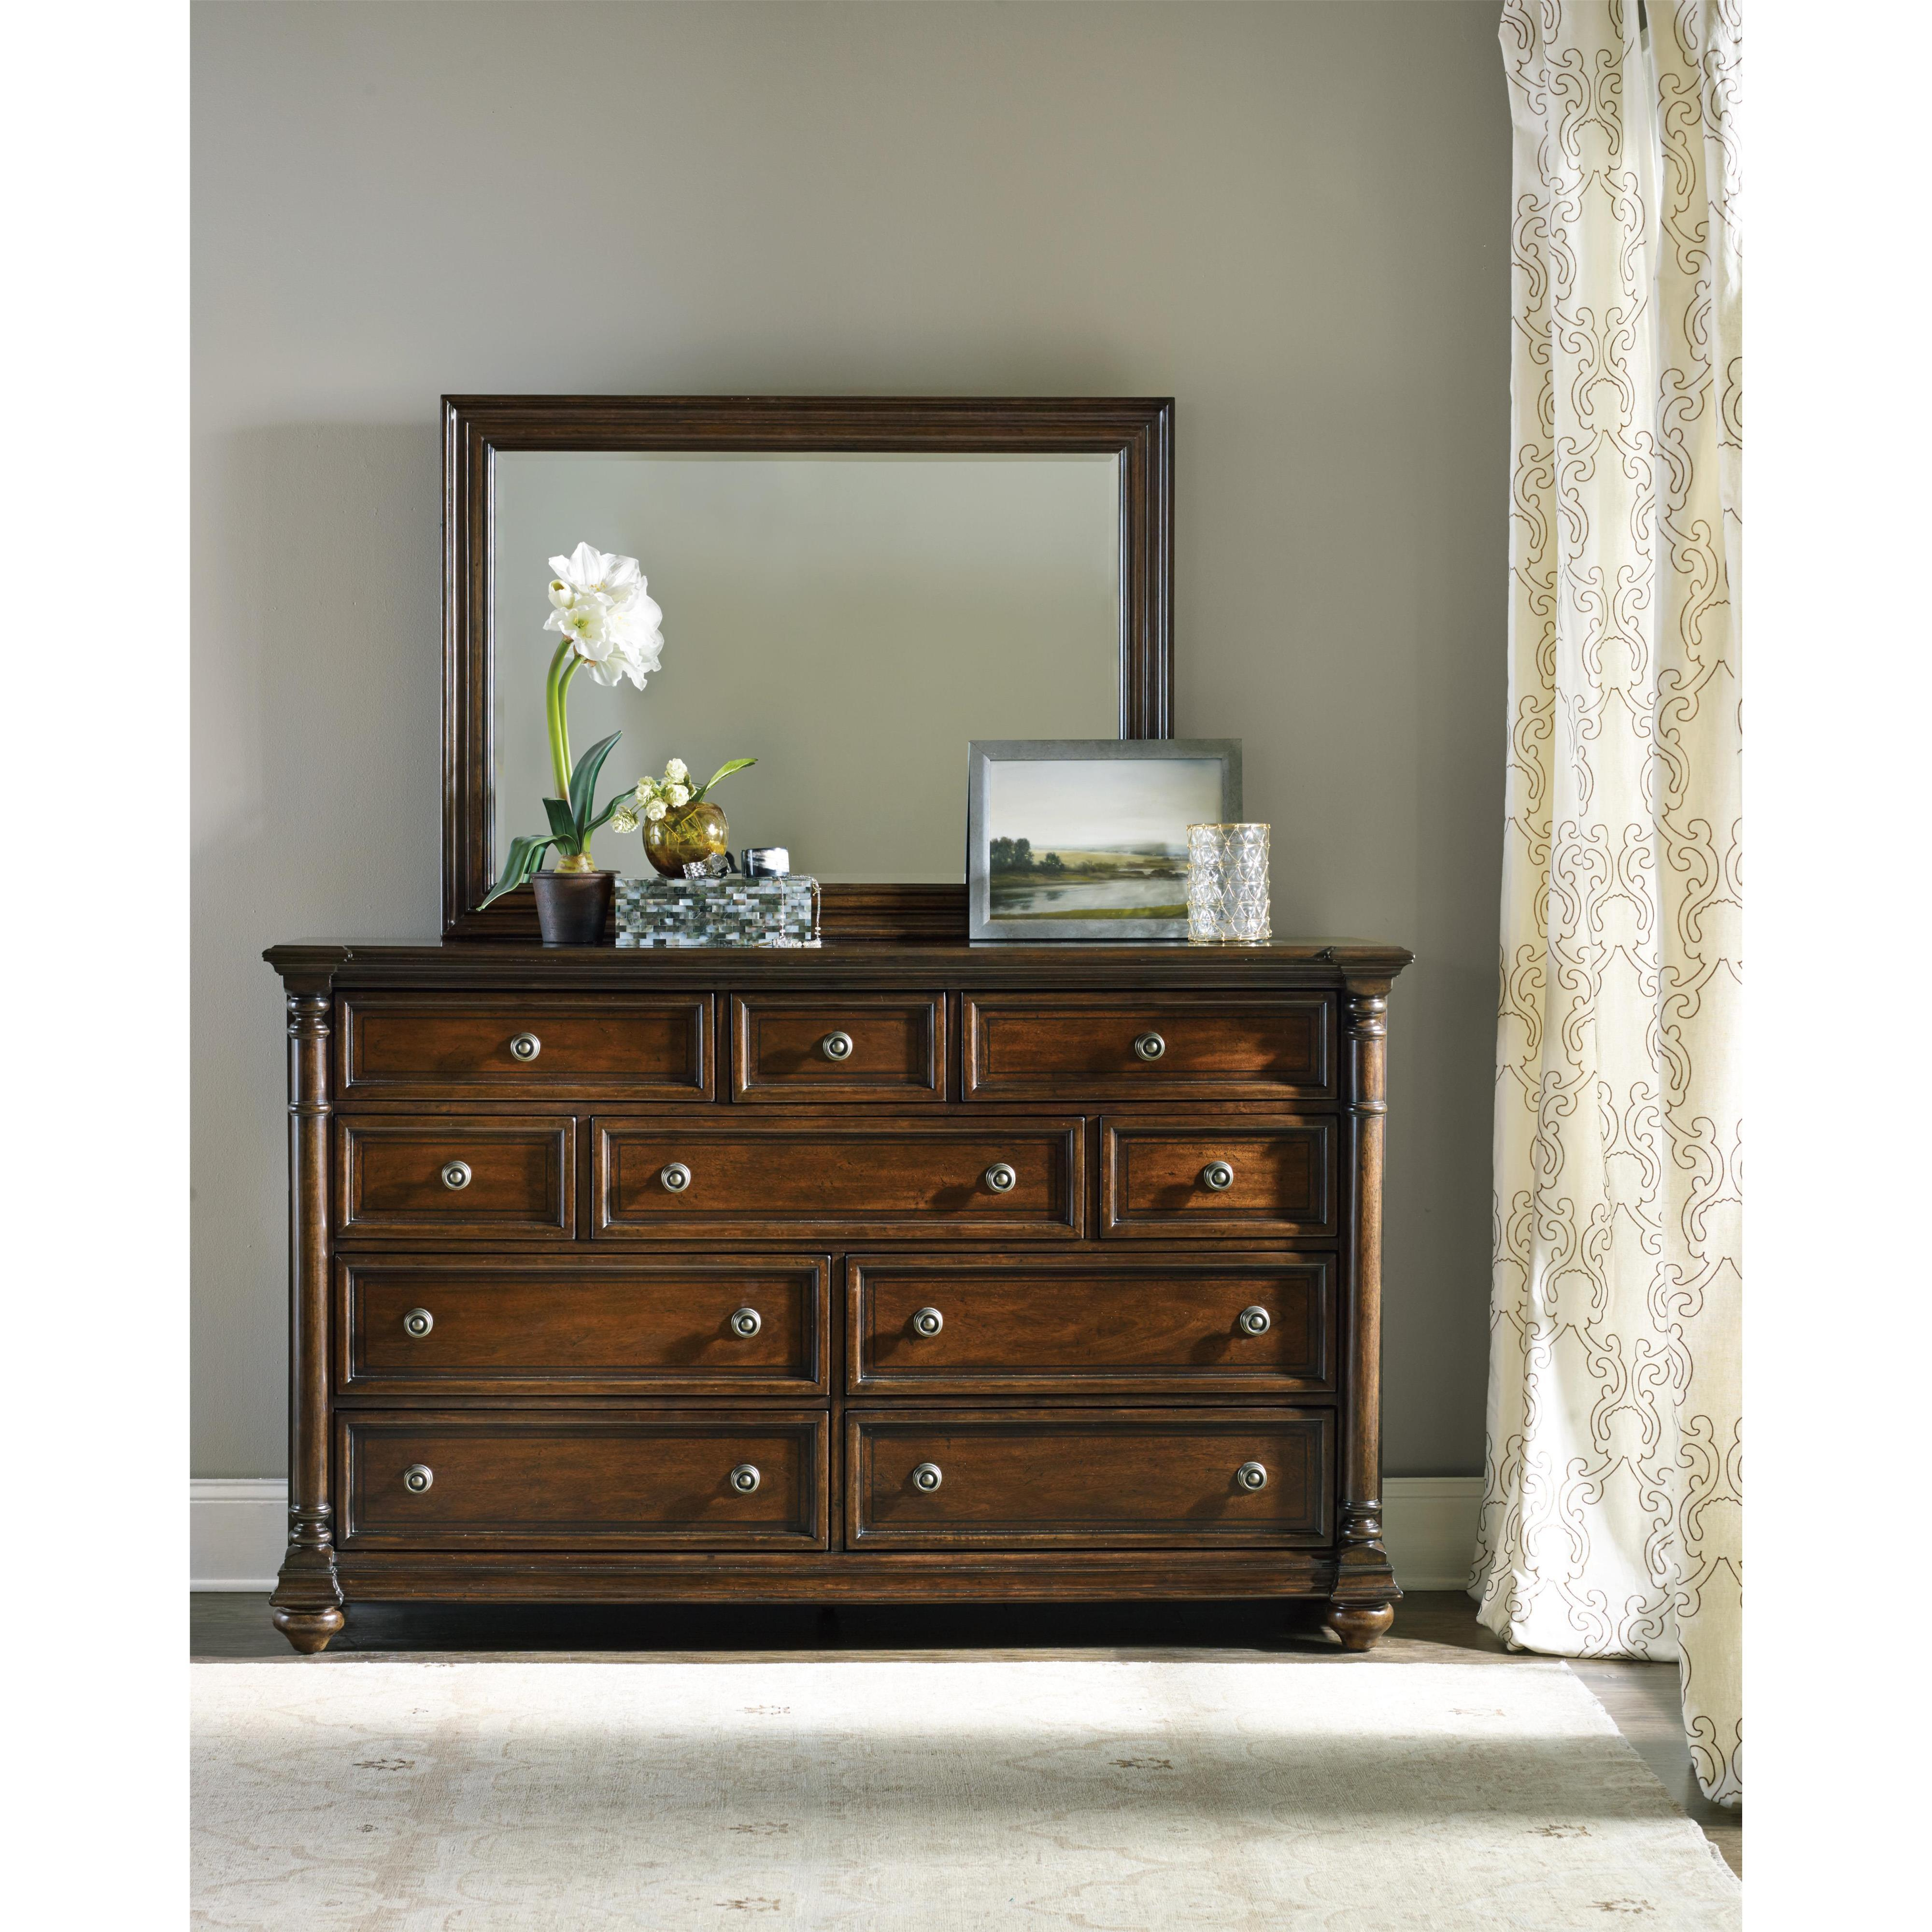 Leesburg Dresser and Mirror by Hooker Furniture at Alison Craig Home Furnishings